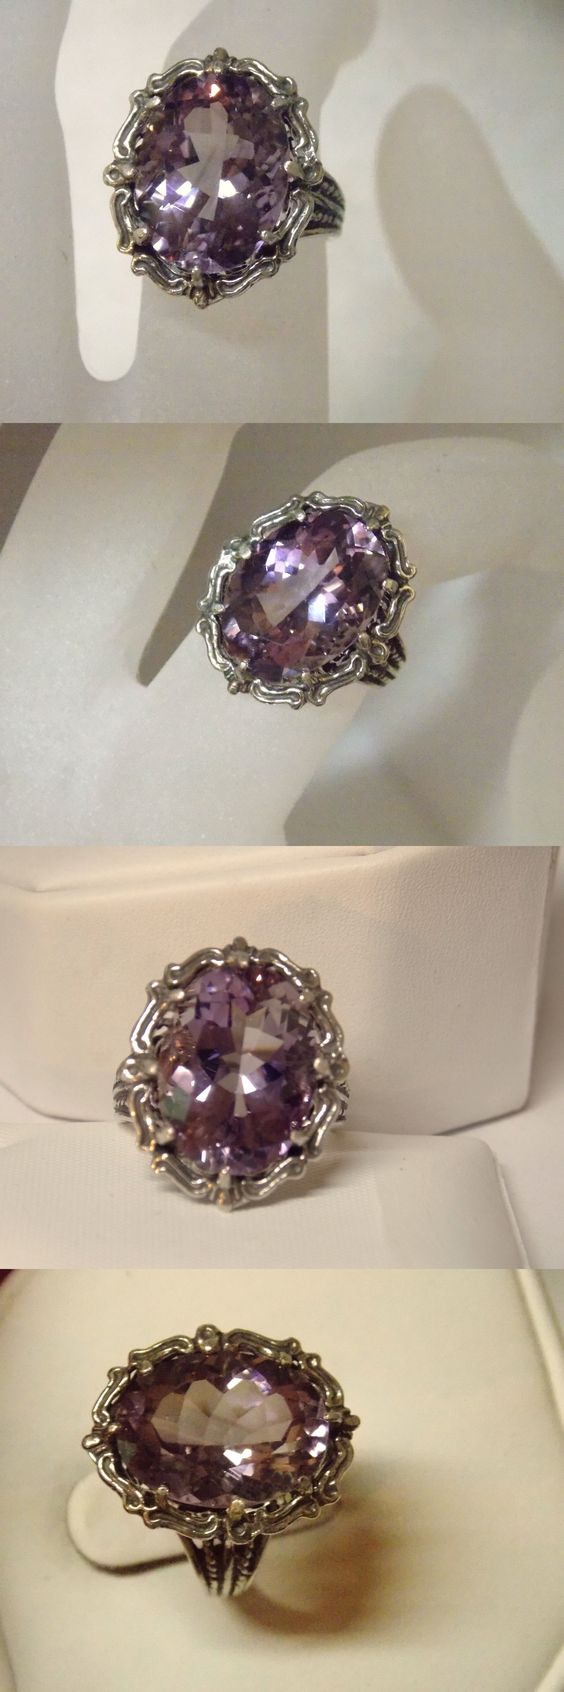 Rings 52603: Natural 9Ct Purple Amethyst Filigree Antique 925 Sterling Silver Ring Size 6.5 BUY IT NOW ONLY: $99.0